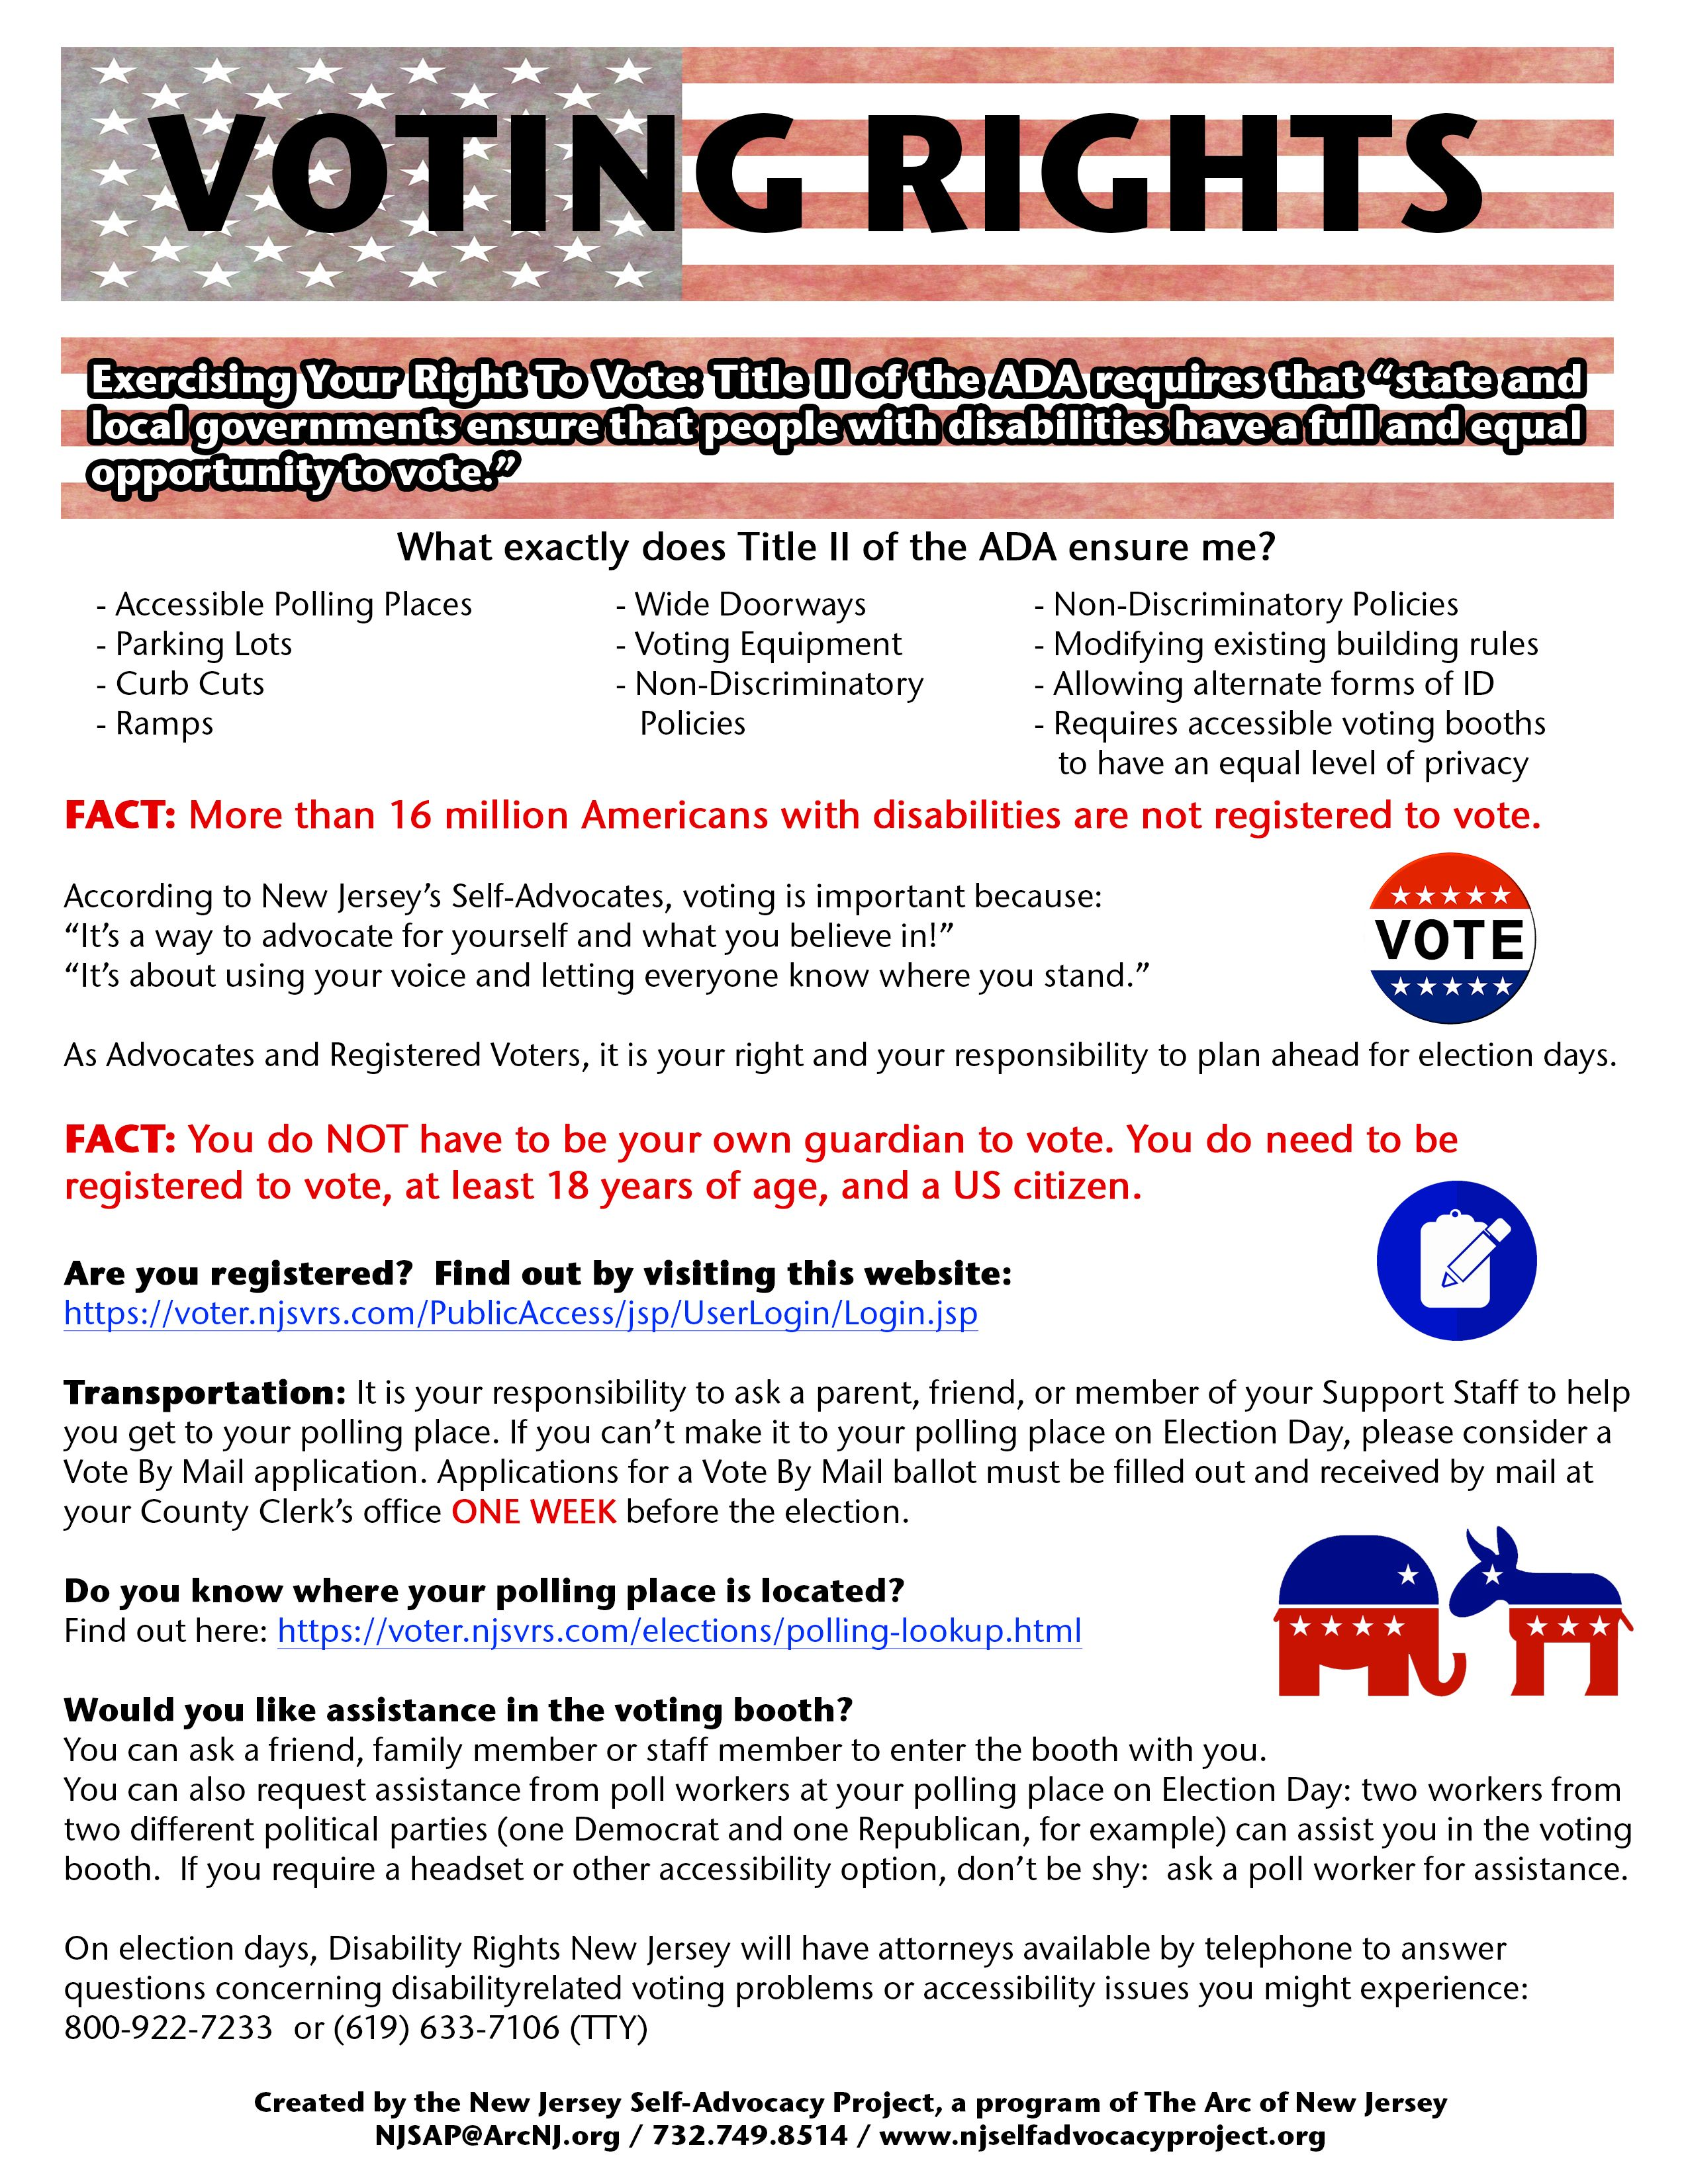 Voting Rights Factsheet